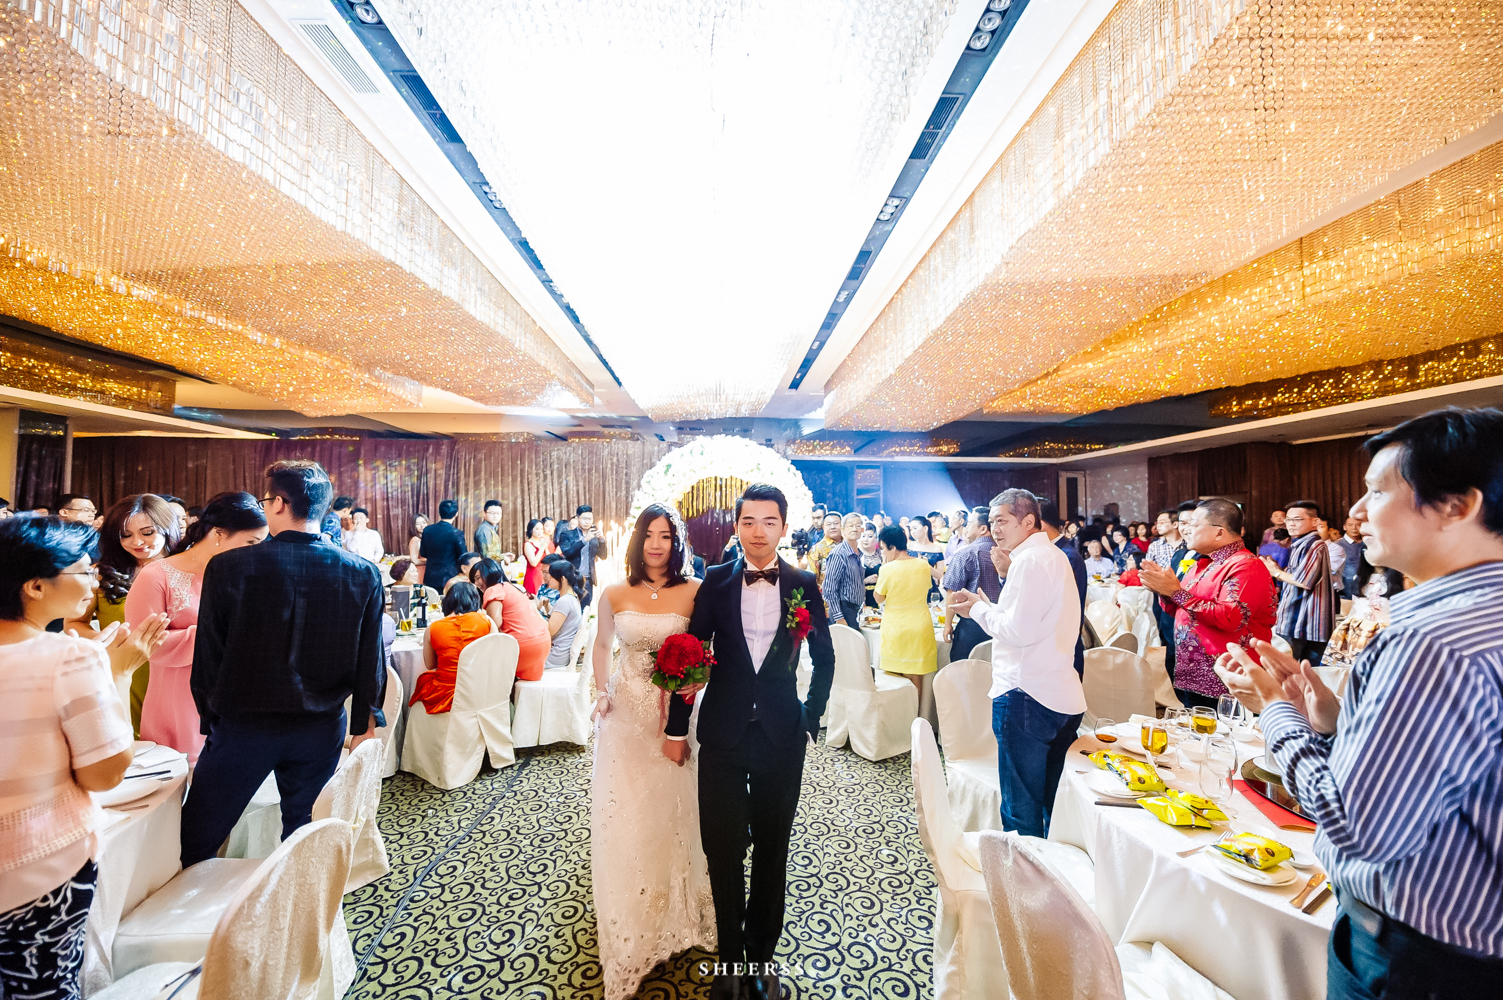 United marpin anqi by juvenco sheerss modern medan surabaya united marpin anqi by juvenco sheerss modern medan surabaya bali jakarta indonesia singapore malaysia wedding photography cinematography junglespirit Image collections